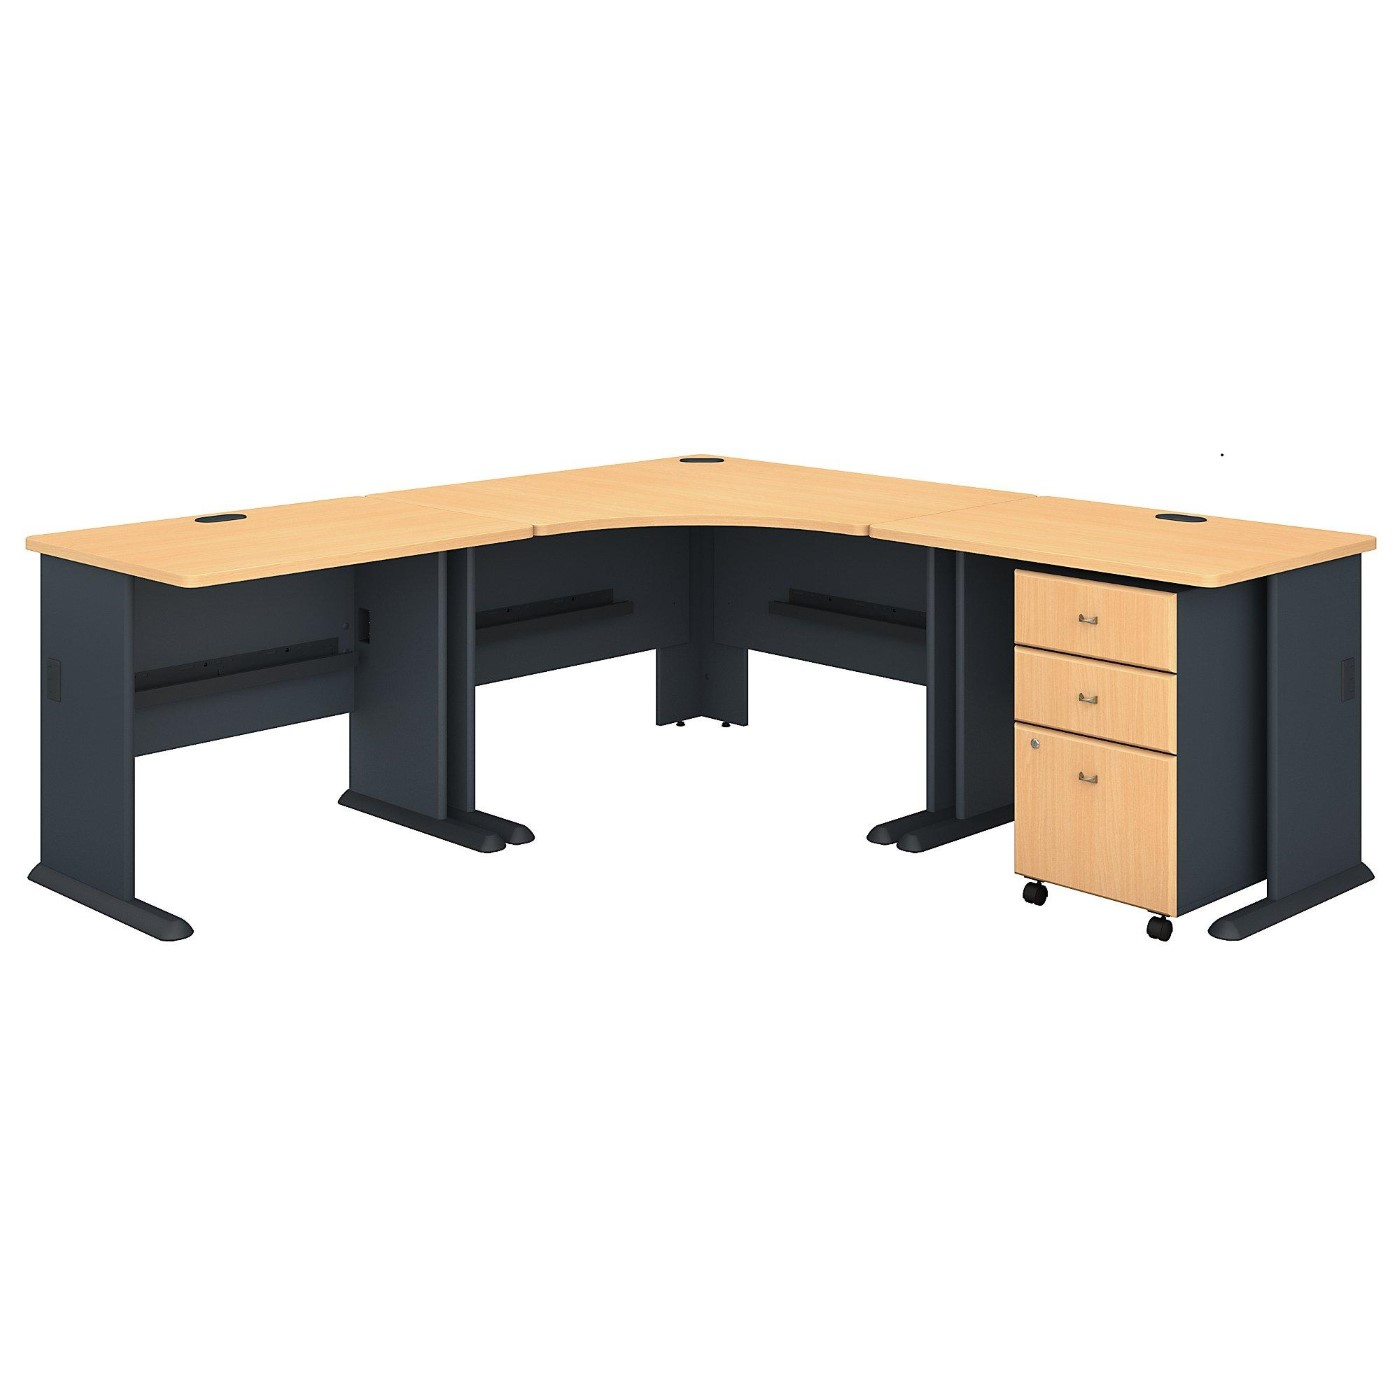 <font color=#c60><b>BUSH BUSINESS FURNITURE SERIES A 84W X 84D CORNER DESK WITH MOBILE FILE CABINET. FREE SHIPPING</font></b></font></b>